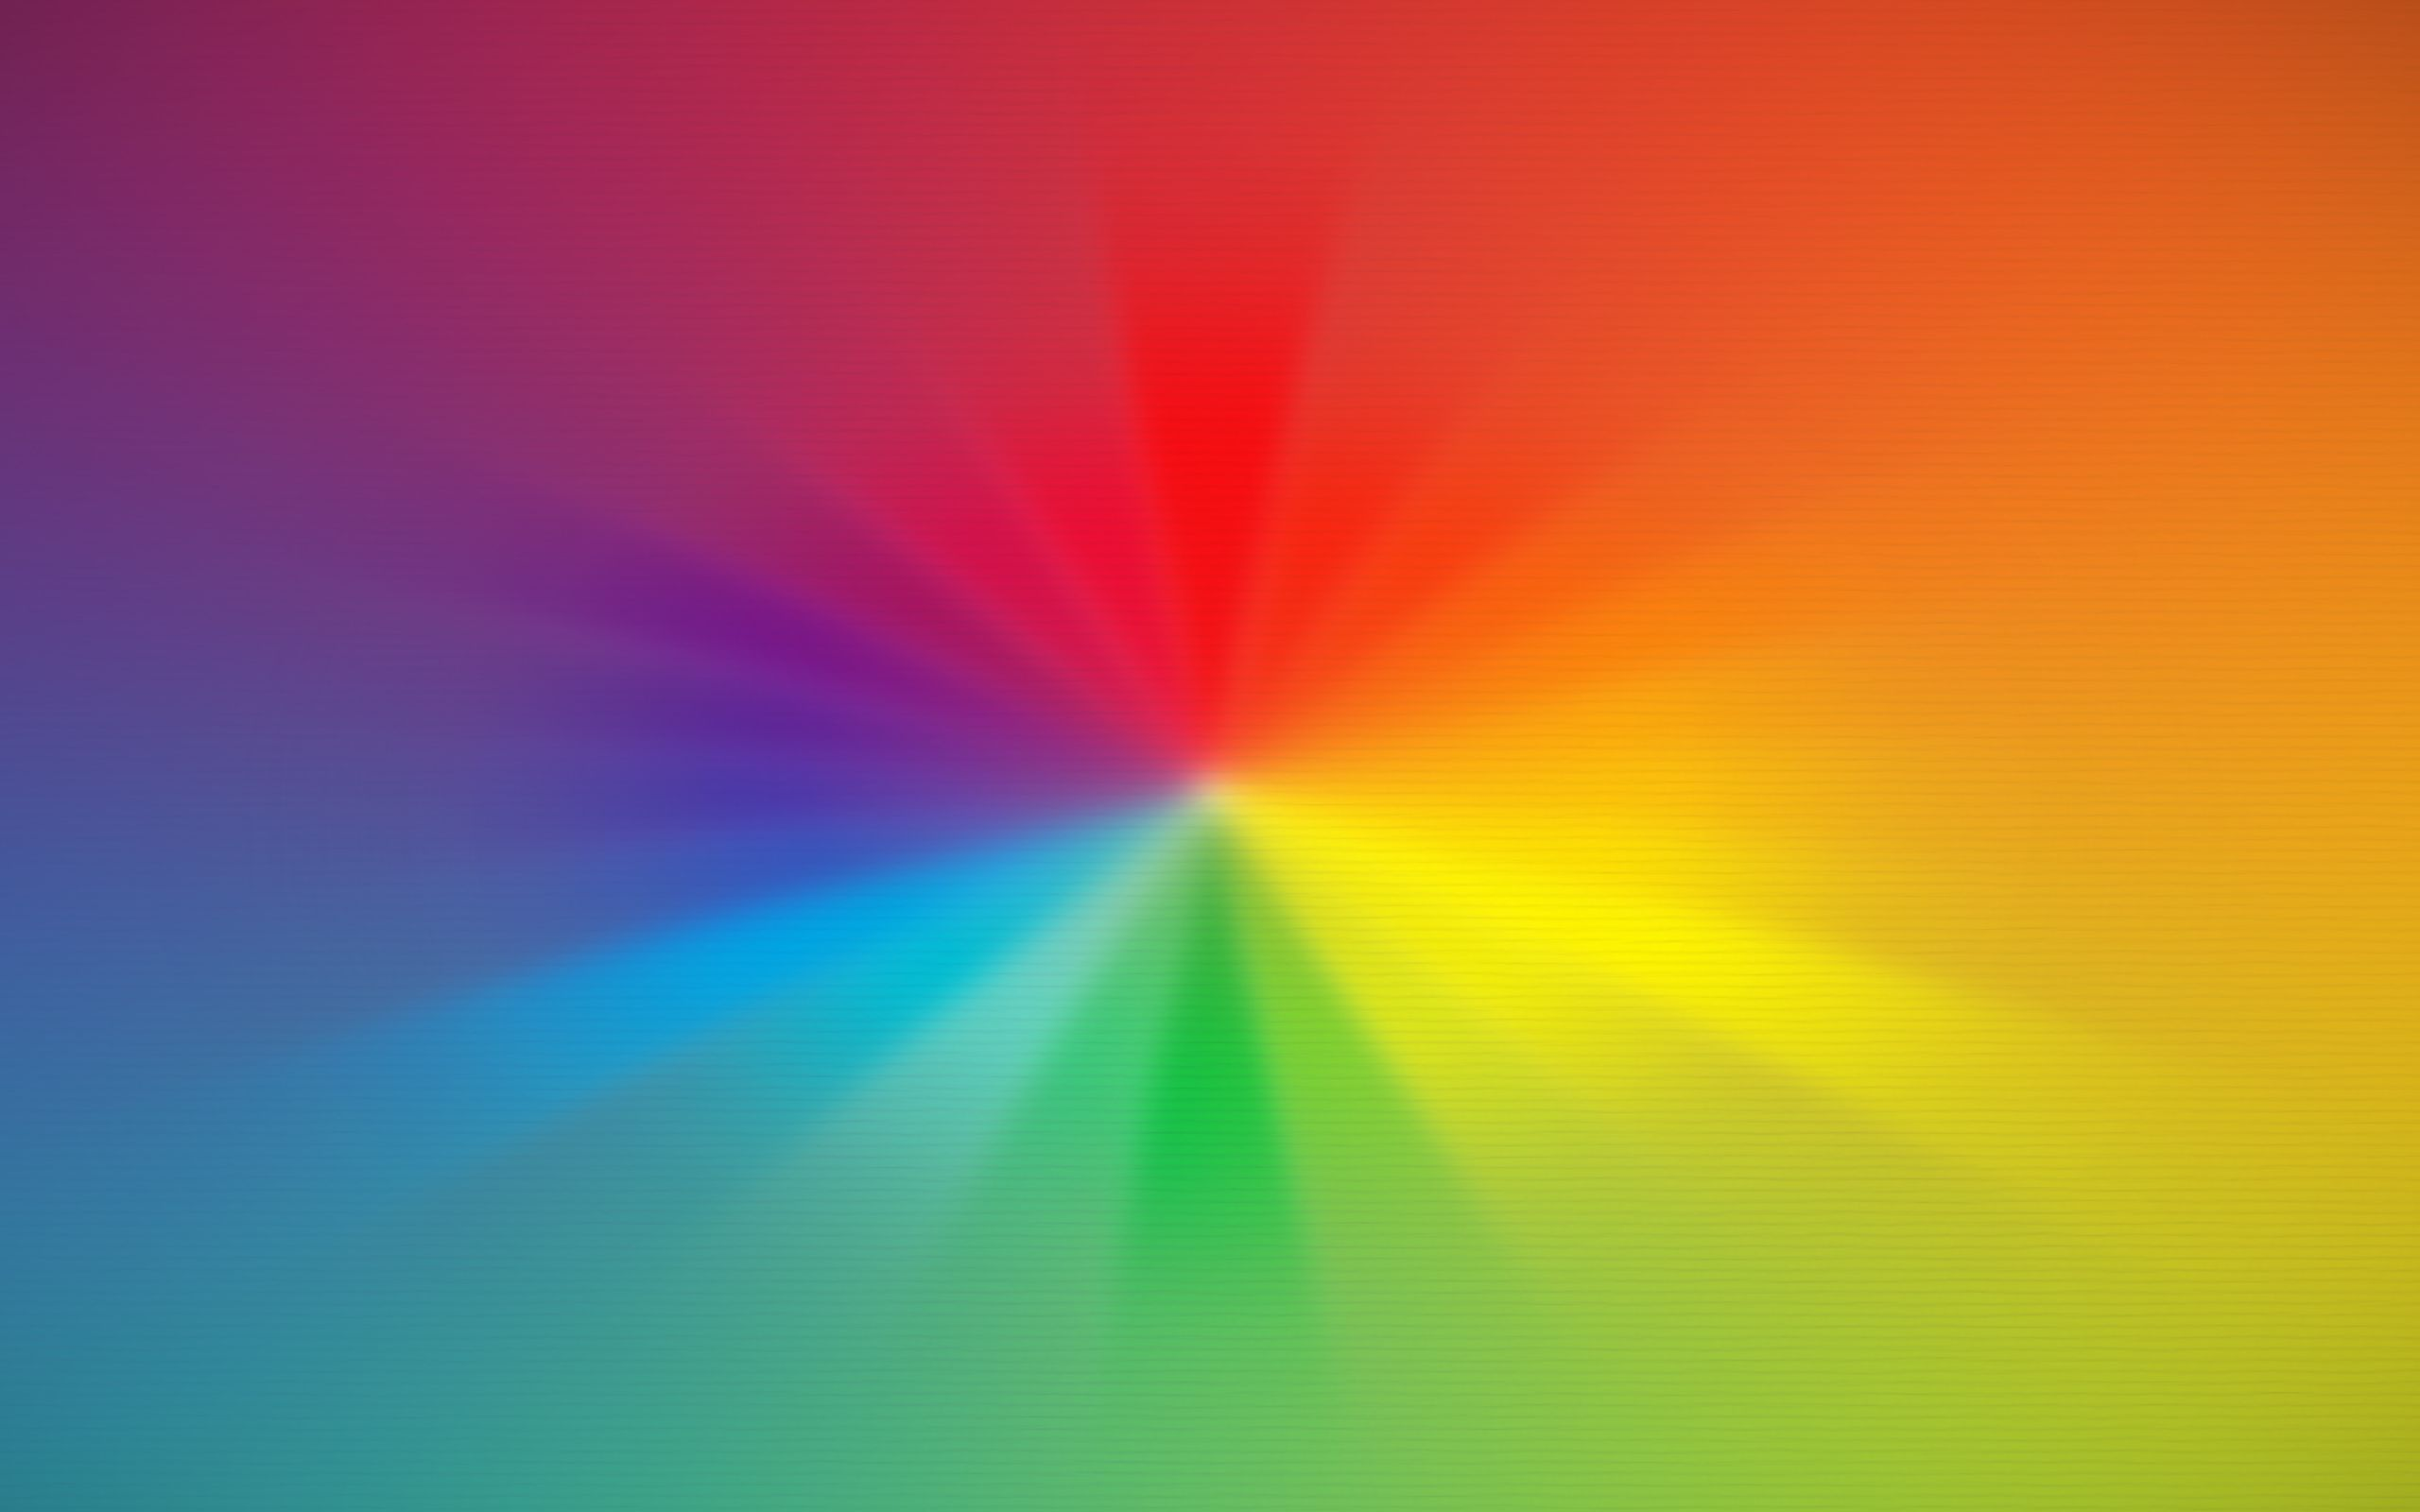 Rainbow Wallpapers Collection For Free Download Hd Wallpapers